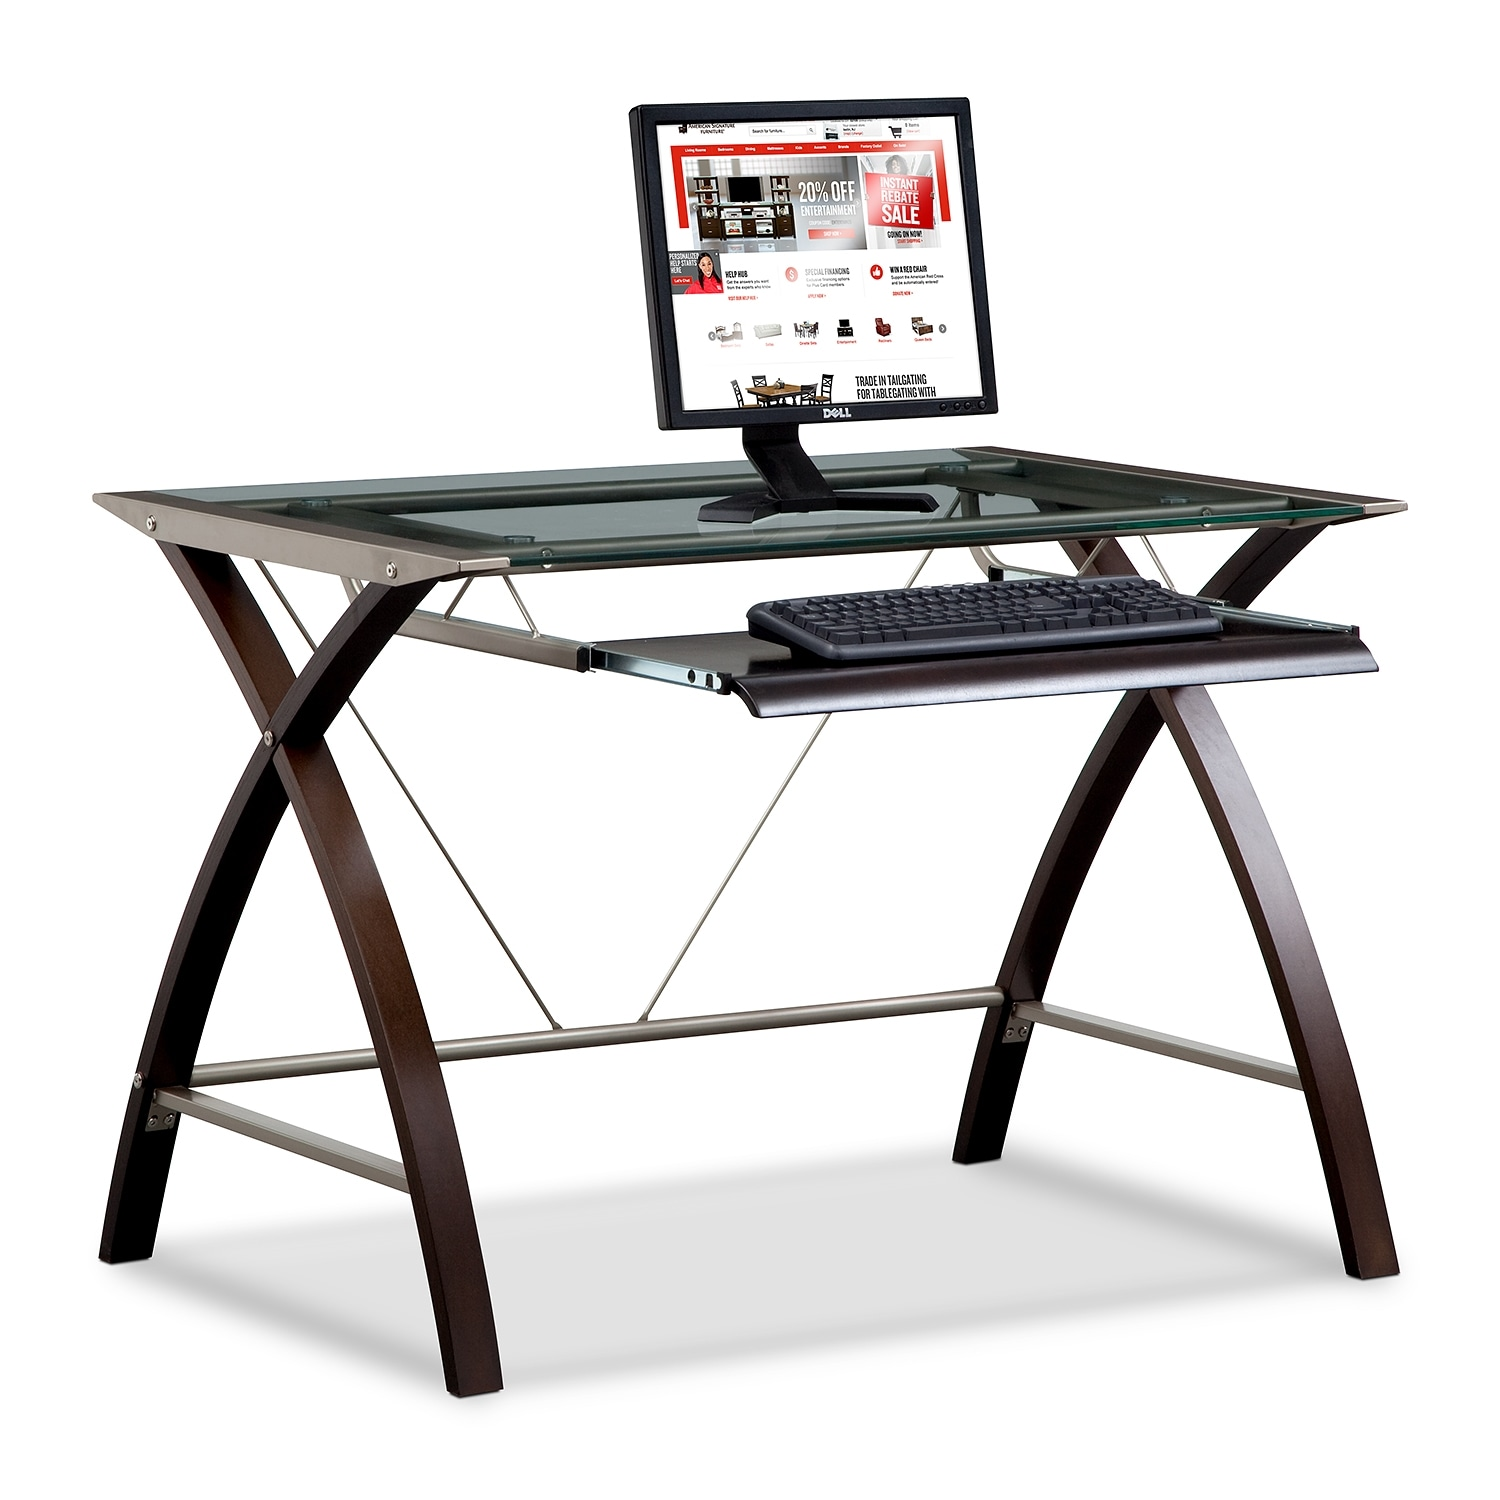 Home Office Furniture - Haley Computer Desk with Keyboard Tray